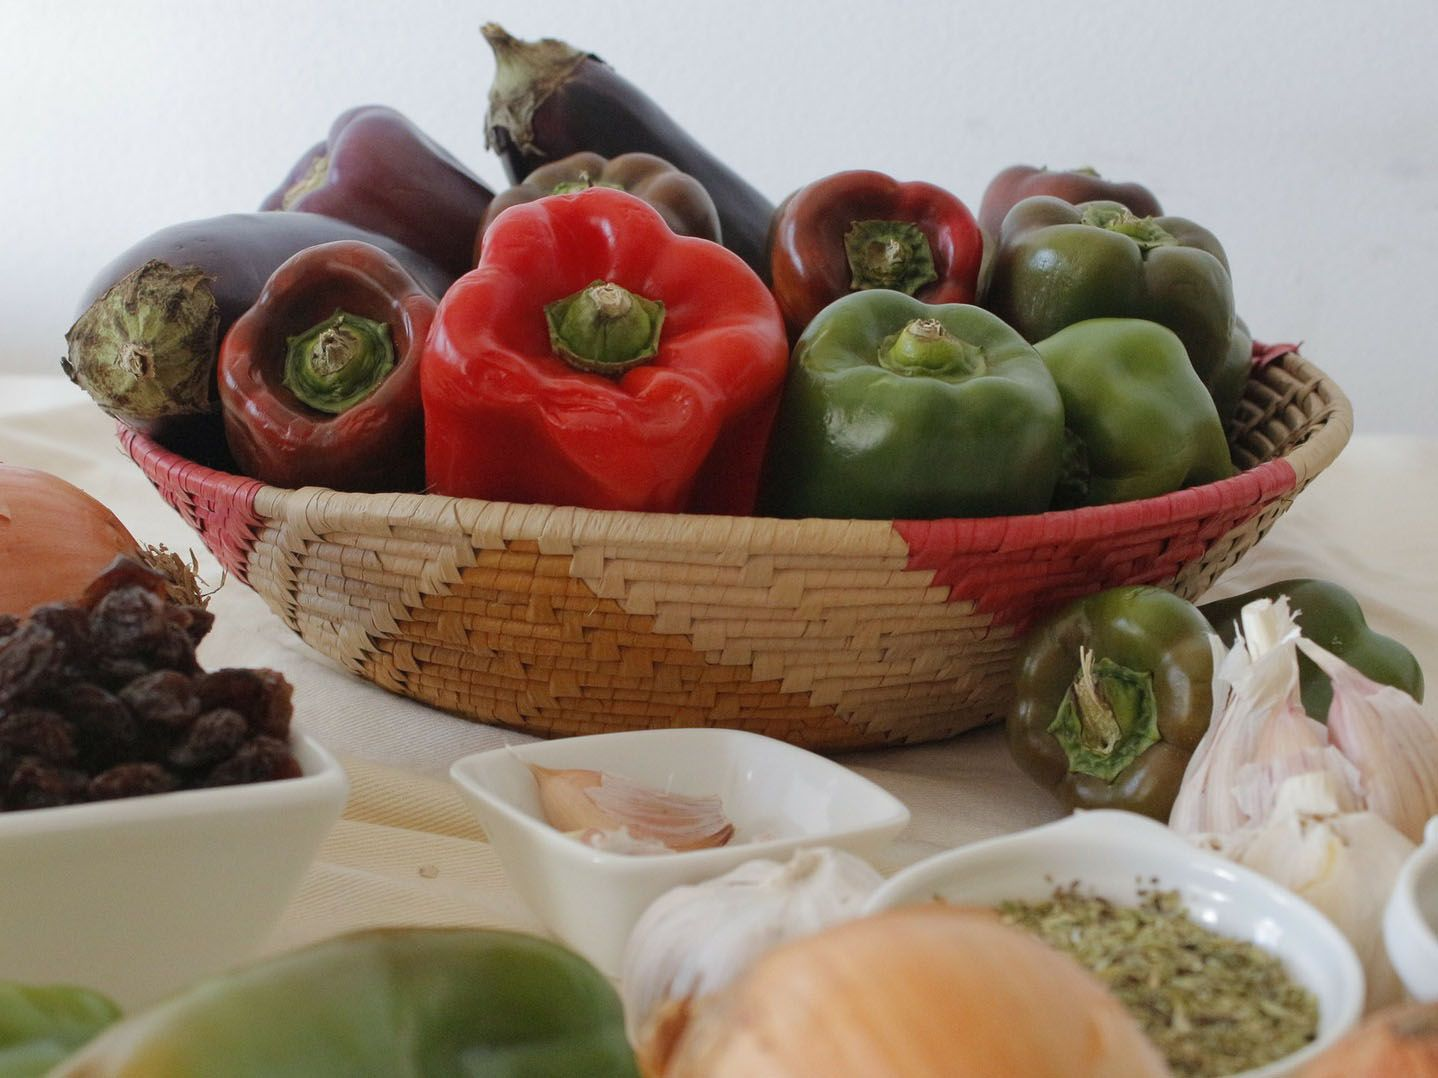 Mediterranean diet's benefits confirmed